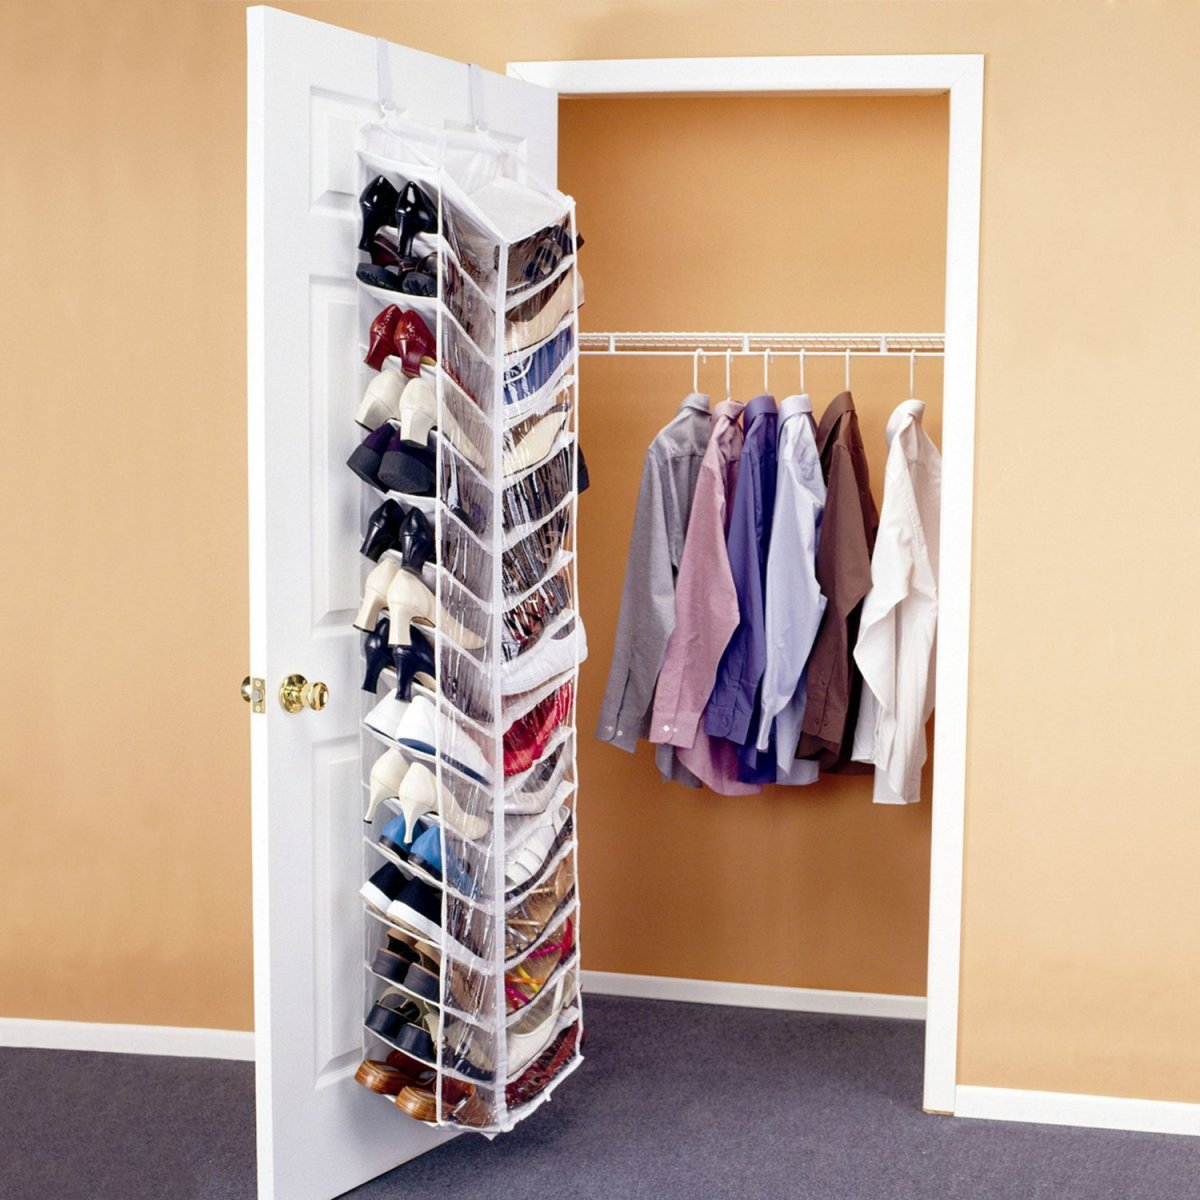 Simple And Compact Closet Organizer For Small Idea With Whiete Wire Hanger Door Anging